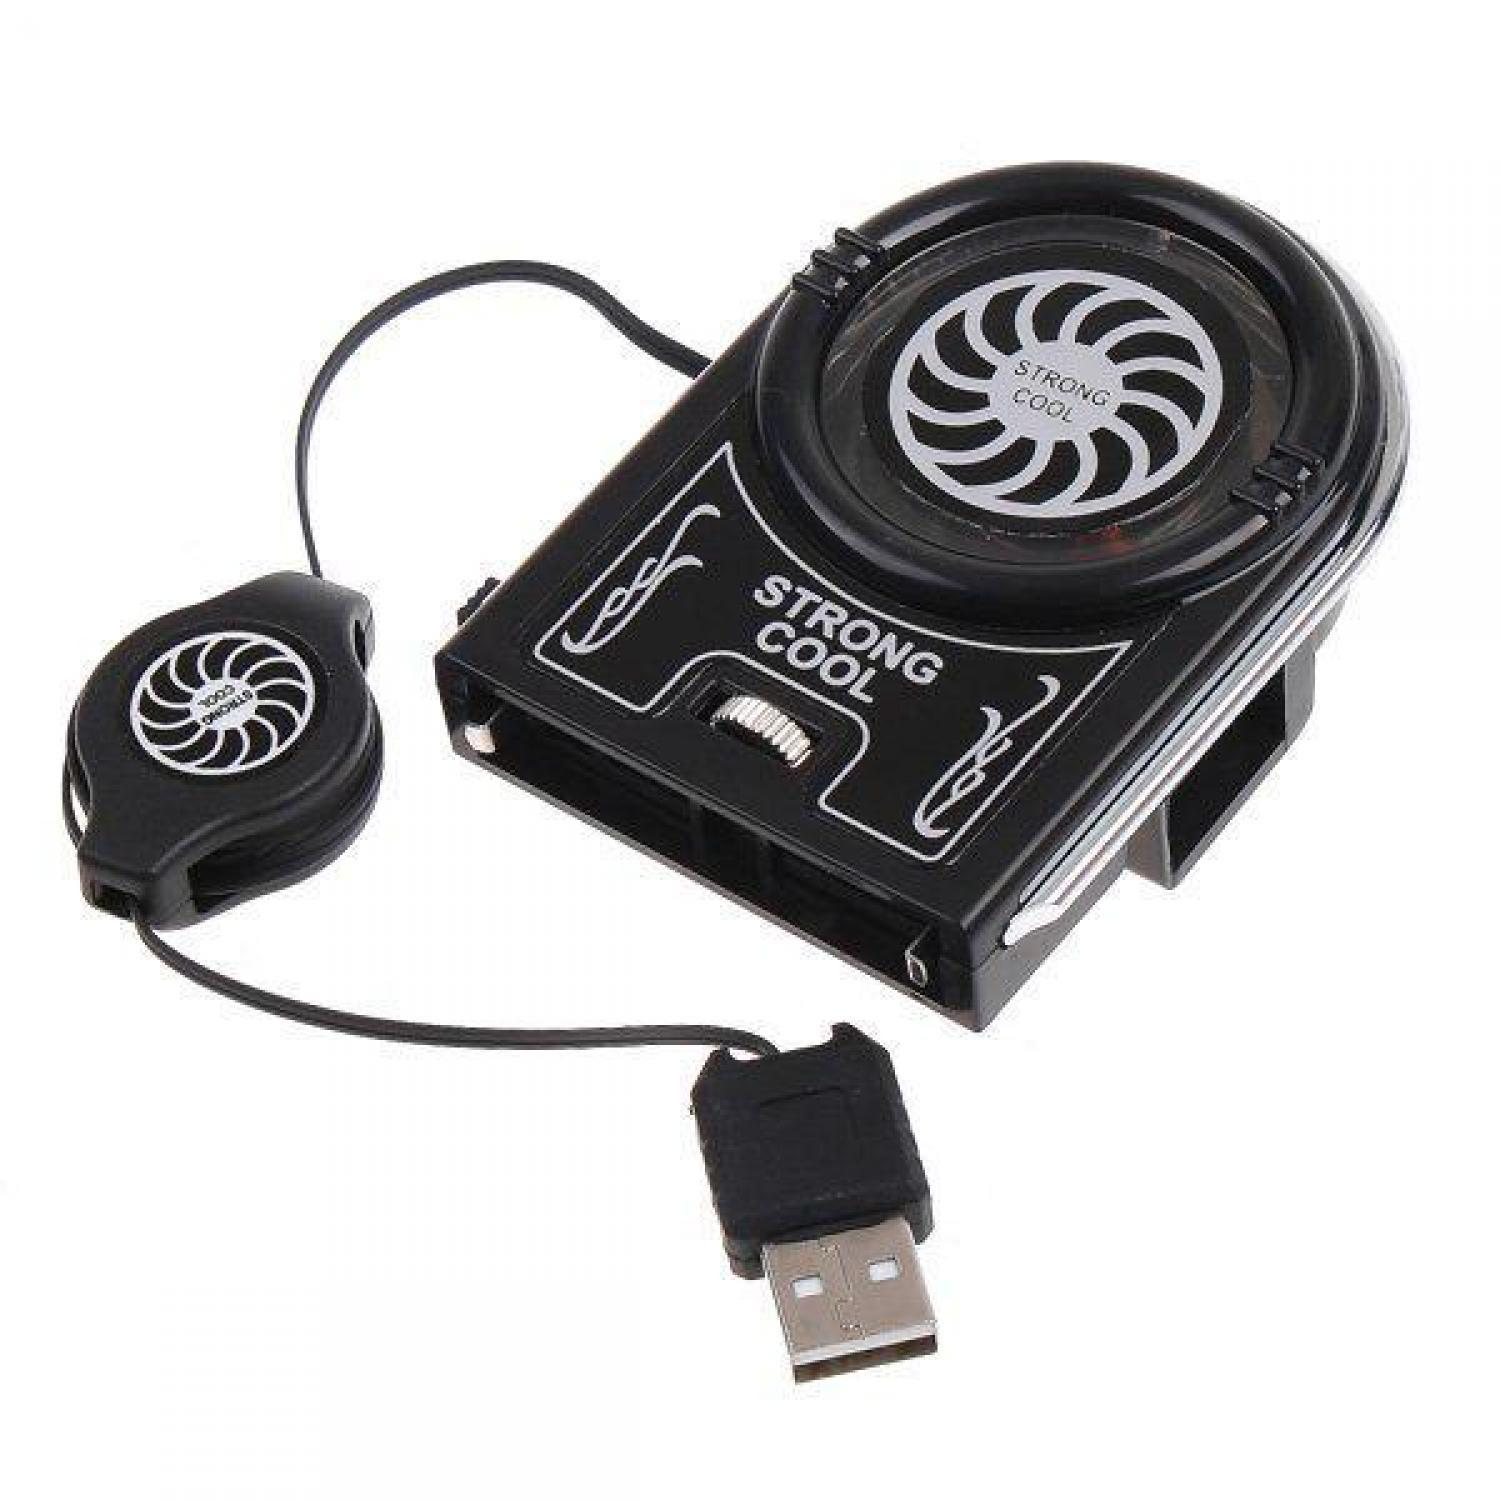 Features Hot Deals Strong Cool Mini Vacuum Cooler Fan Penghisap Coolerpad 1 Ergostand Kipas Pendingin Laptop Panas Cooling Pad Termurah